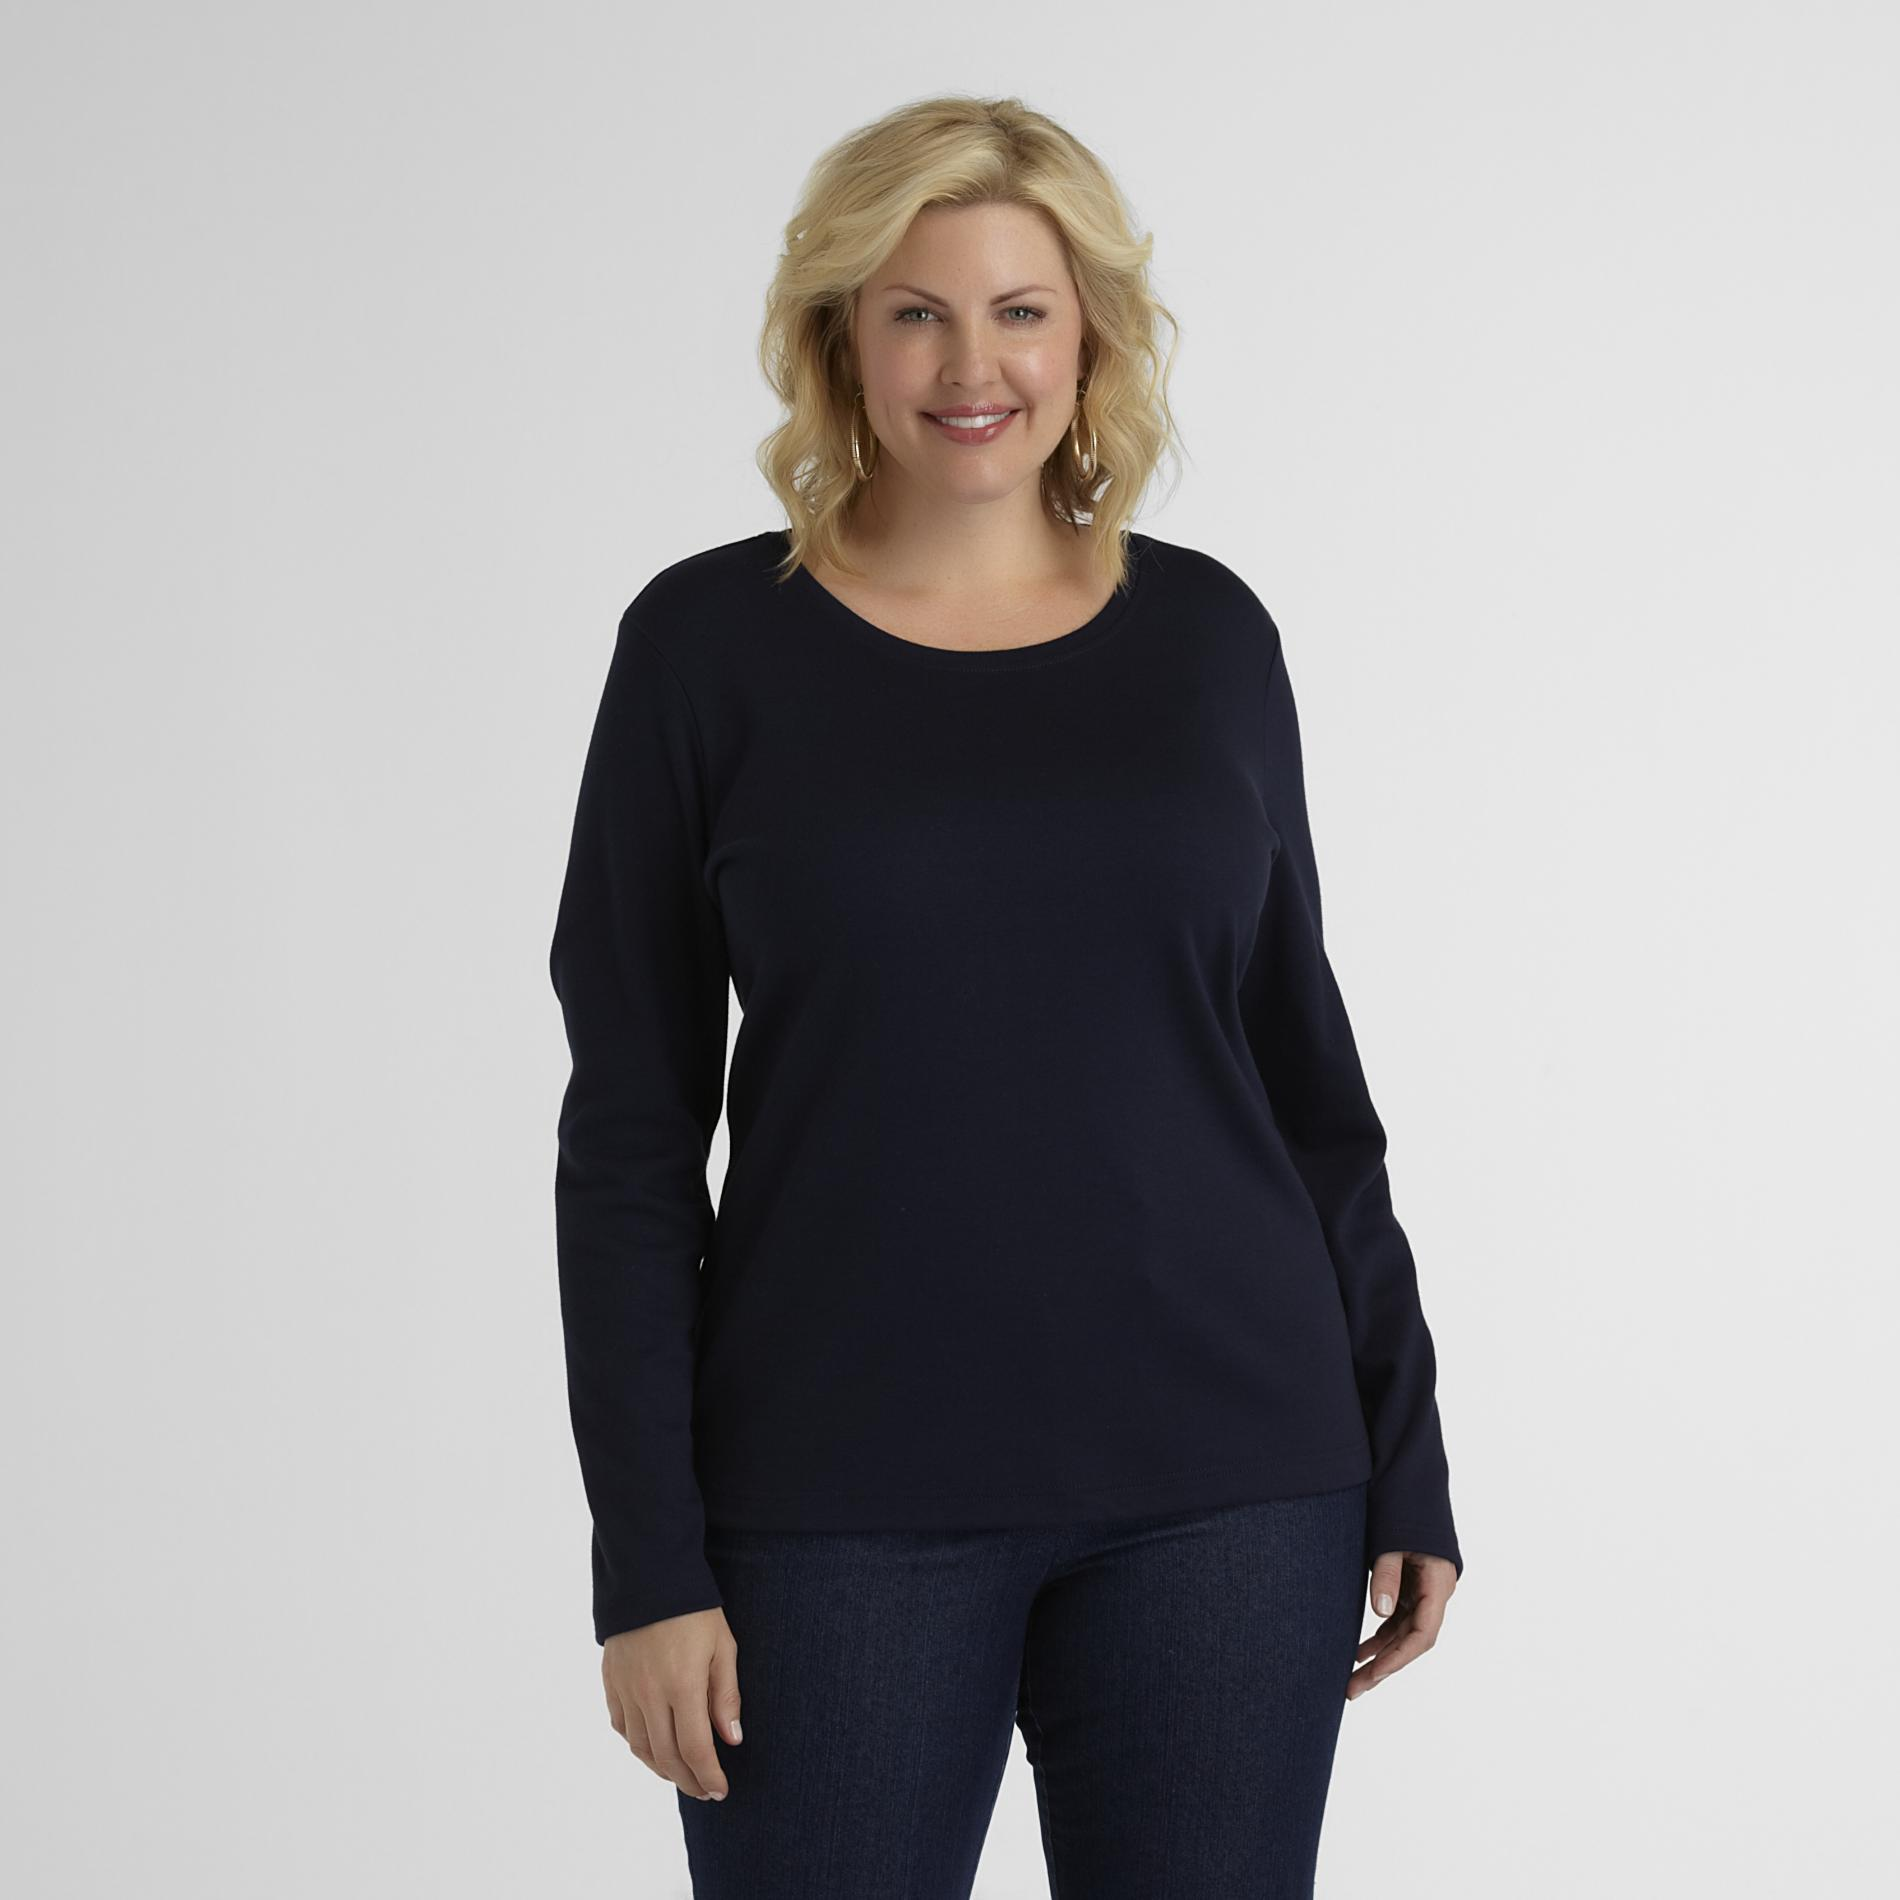 Basic Editions Women's Plus Relaxed Fit T-Shirt at Kmart.com